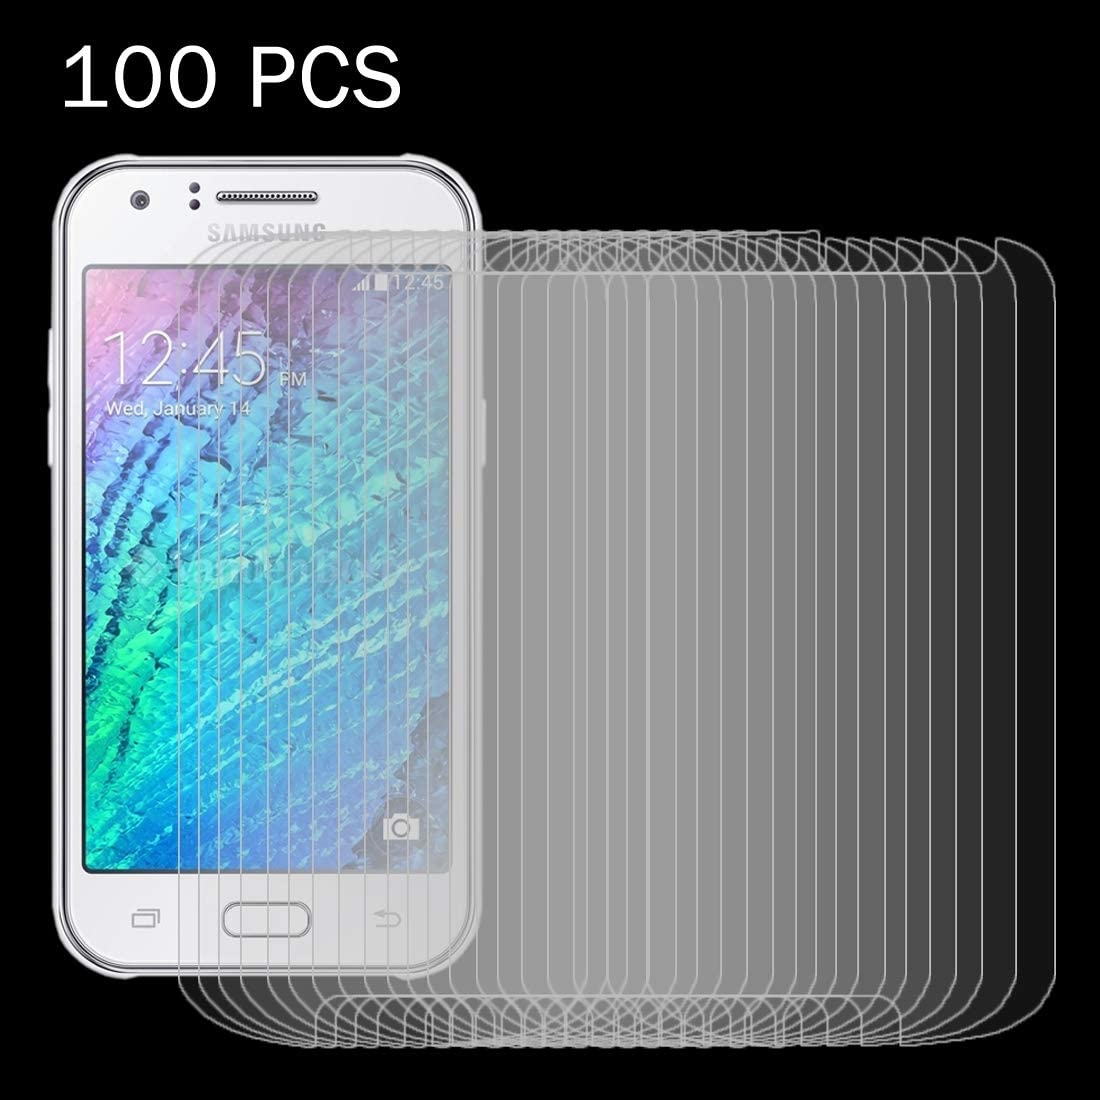 ZENGMING Tempered Glass Film Screen Protector 100 PCS for Galaxy J1 Ace J110 0.26mm 9H Surface Hardness 2.5D Explosion-Proof Tempered Glass Screen Film Anti-Scratch